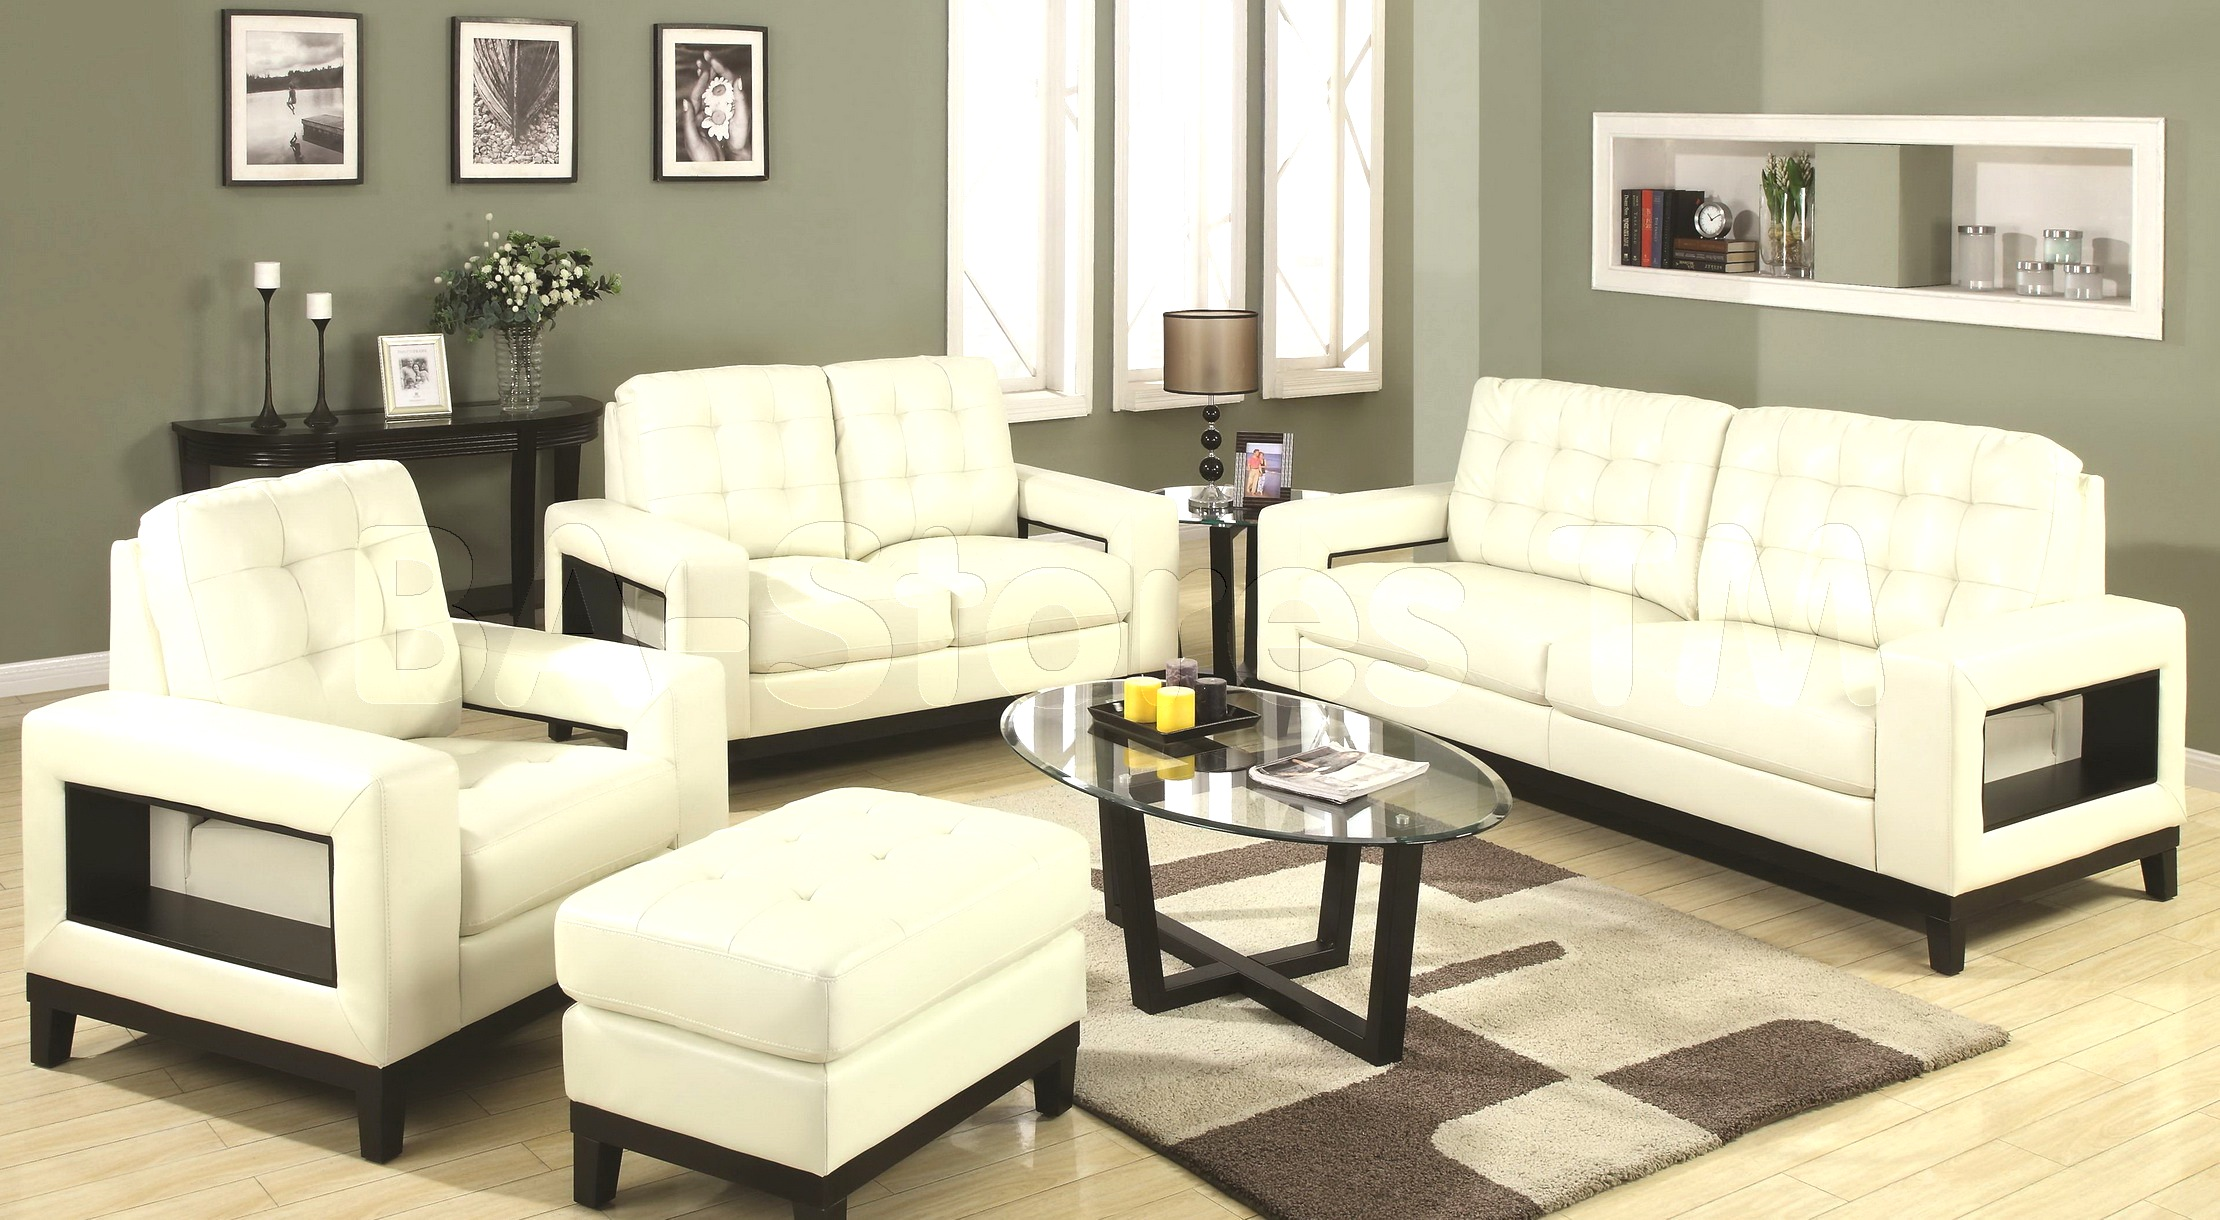 Sofa set designs home design for Designer living room sets